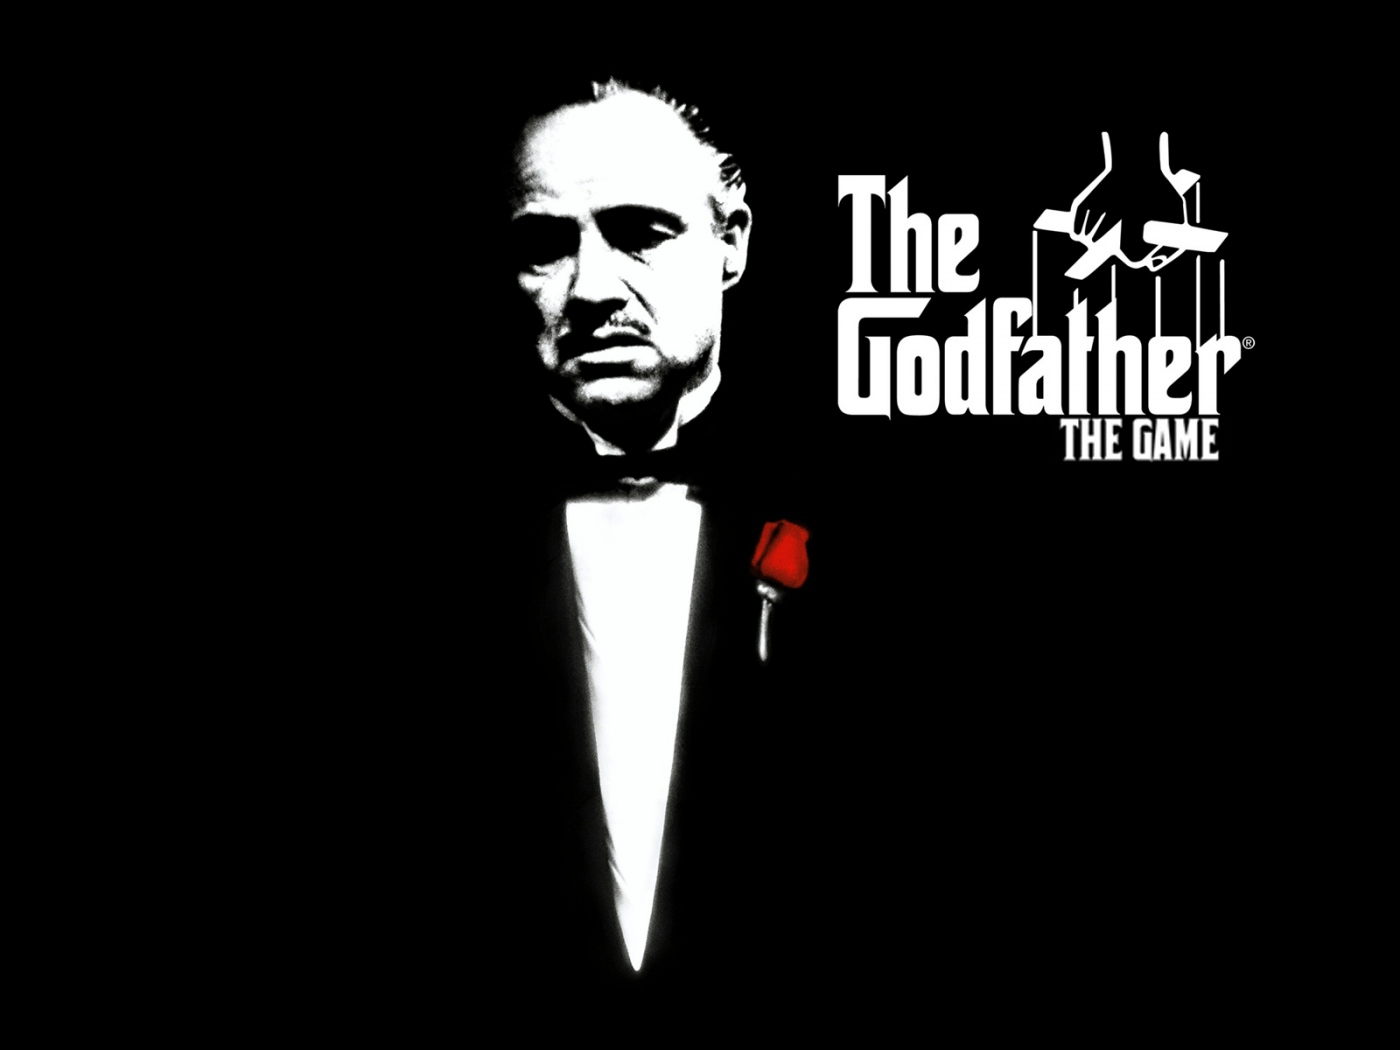 1400x1050 Wallpaper godfather marlon brando don vito corleone black 1400x1050